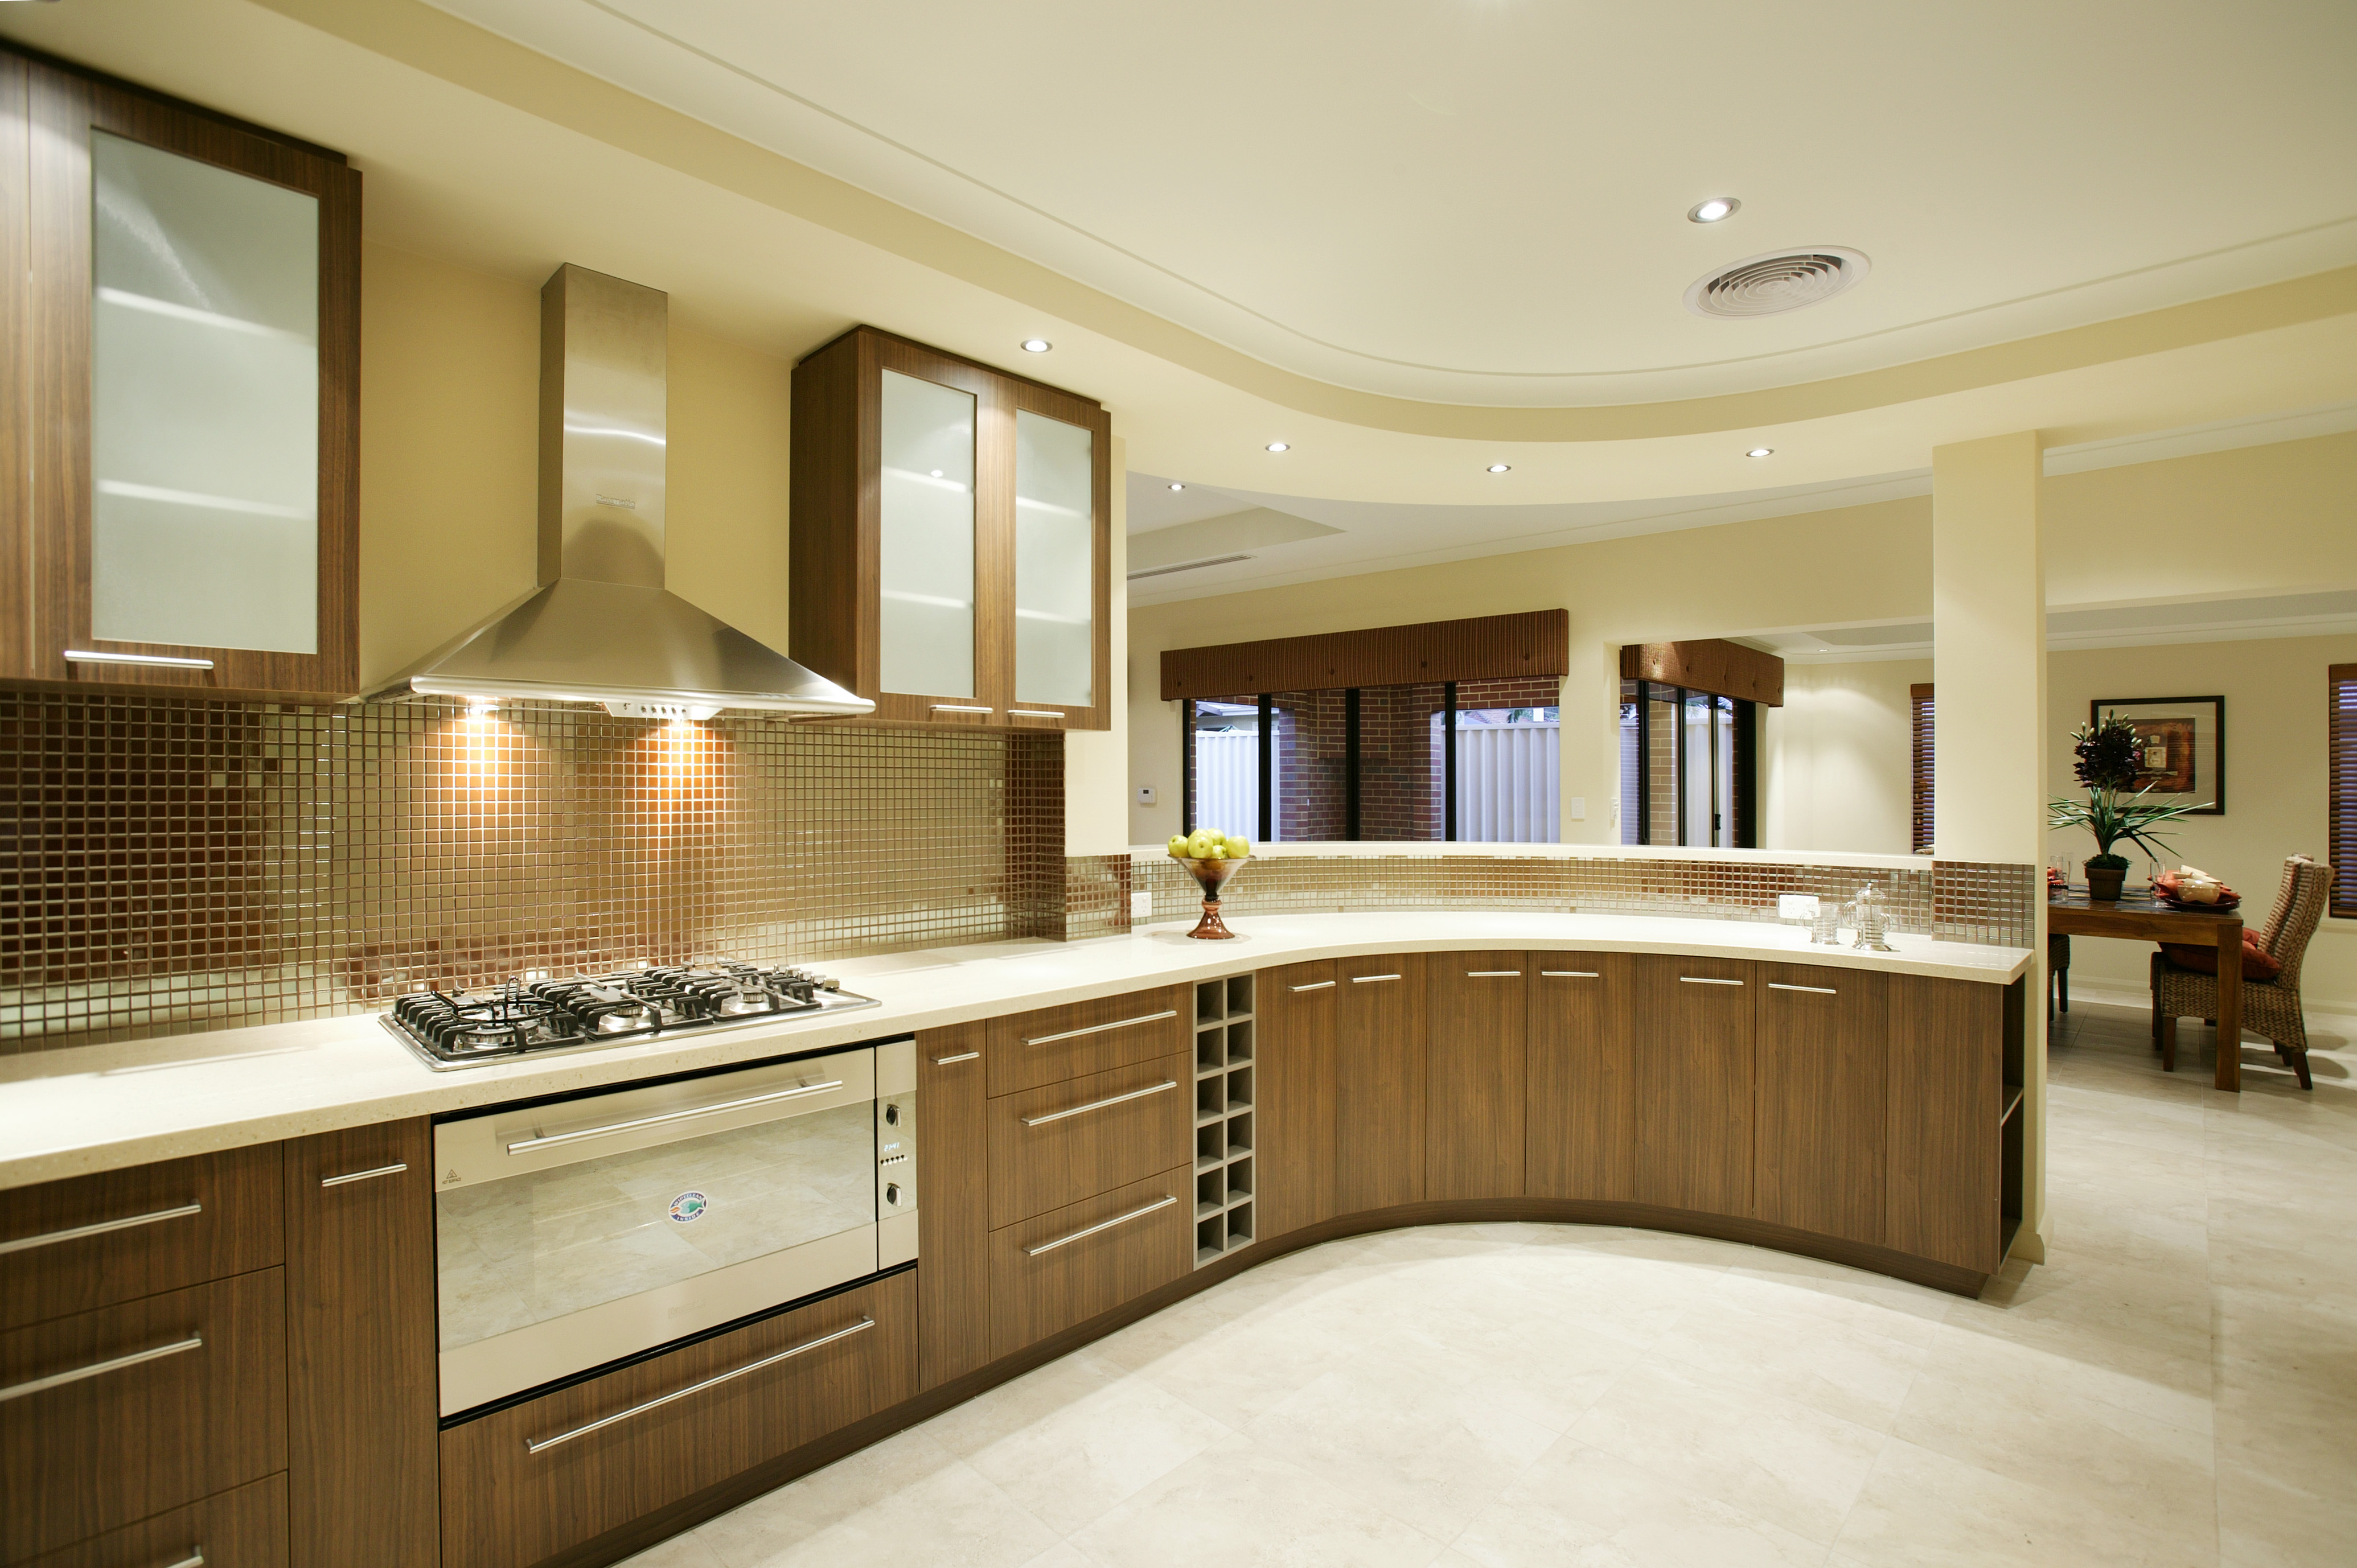 35 Kitchen Design For Your Home – The WoW Style